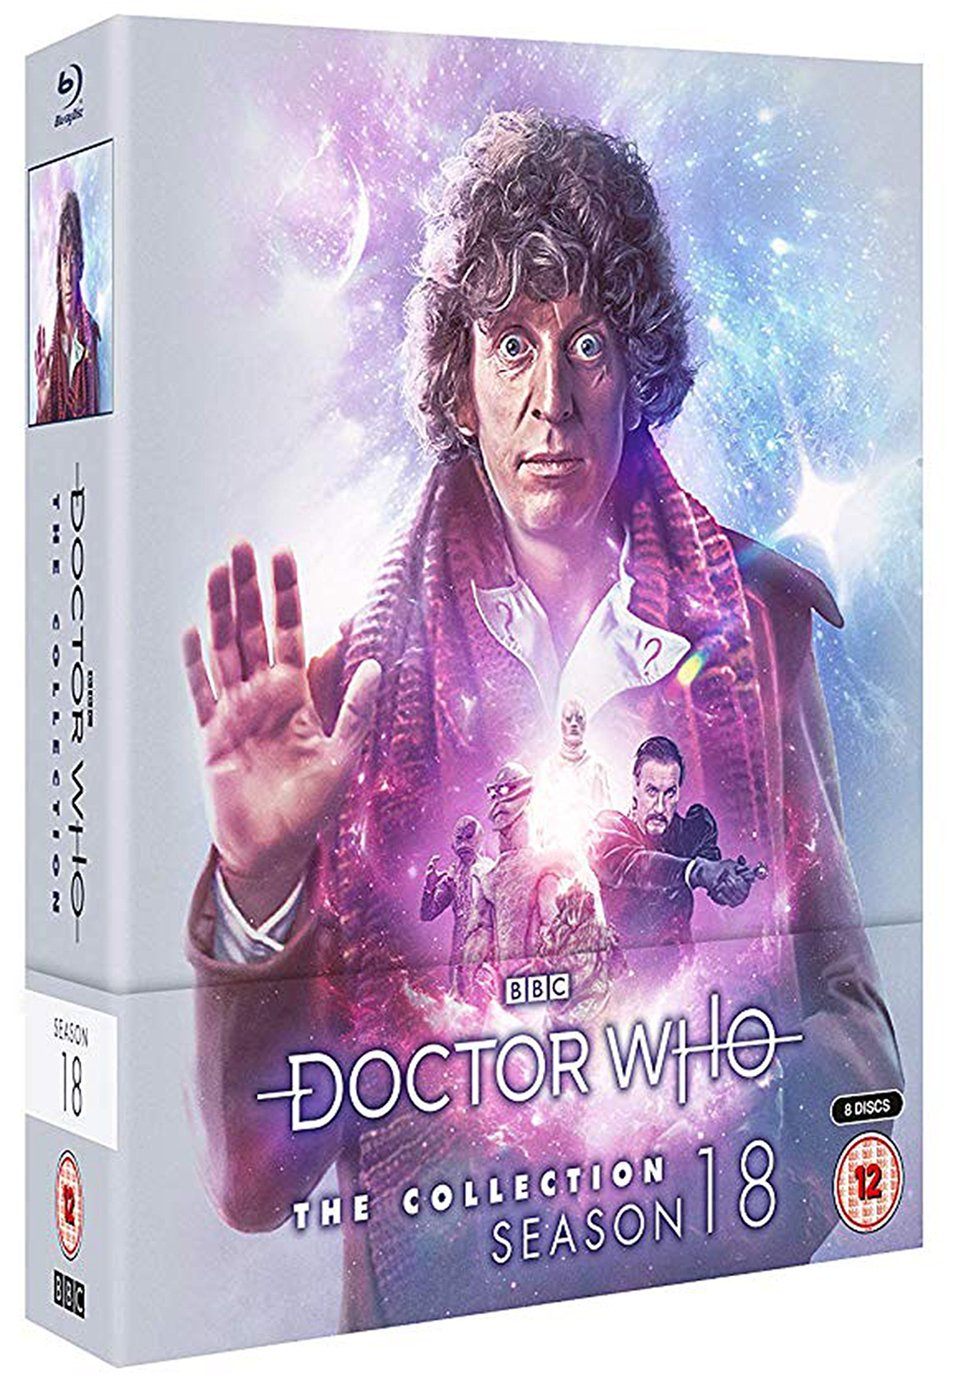 Doctor Who: The Collection Season 18 Blu-Ray review